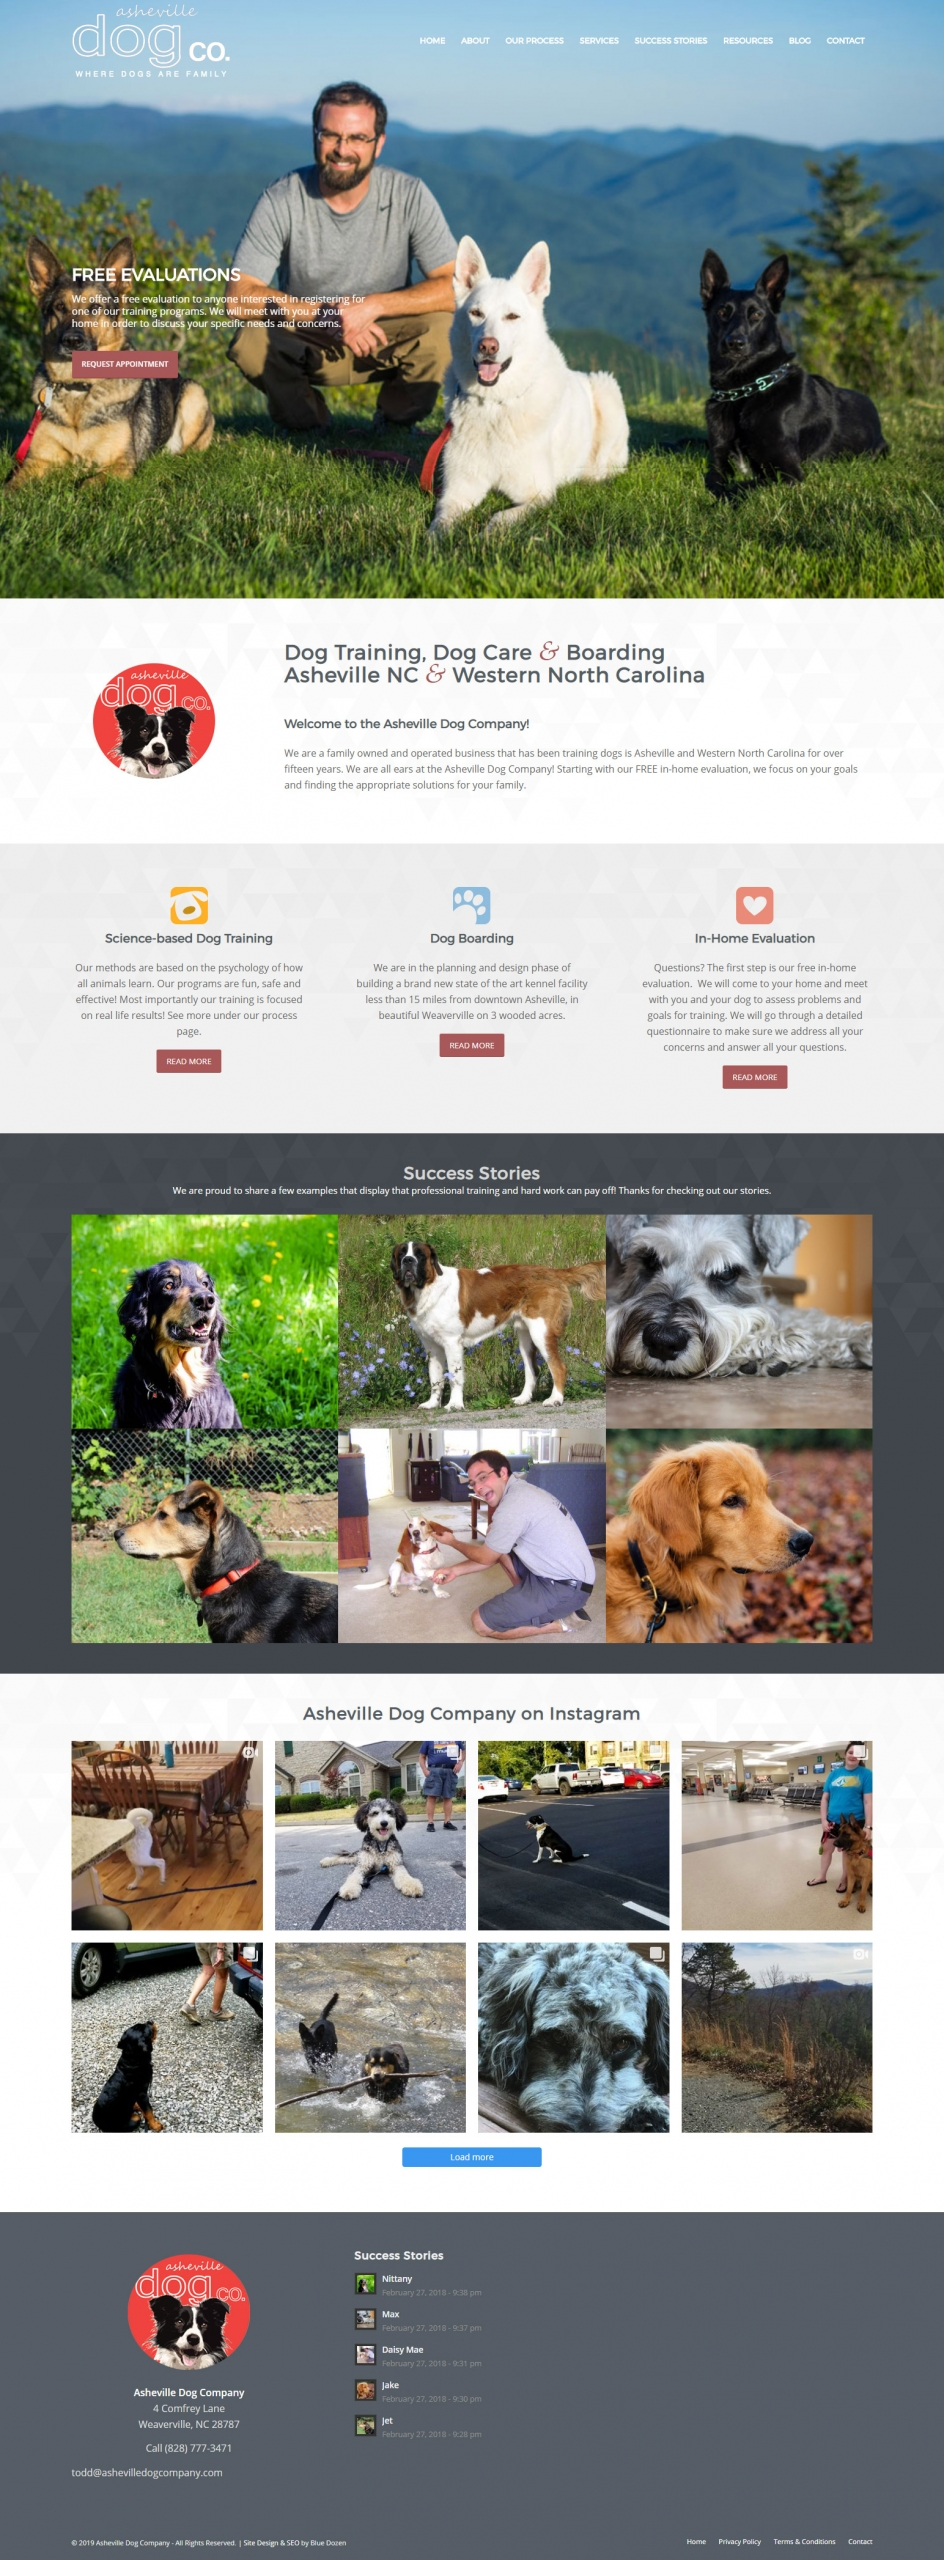 Website Design for Asheville Dog Company